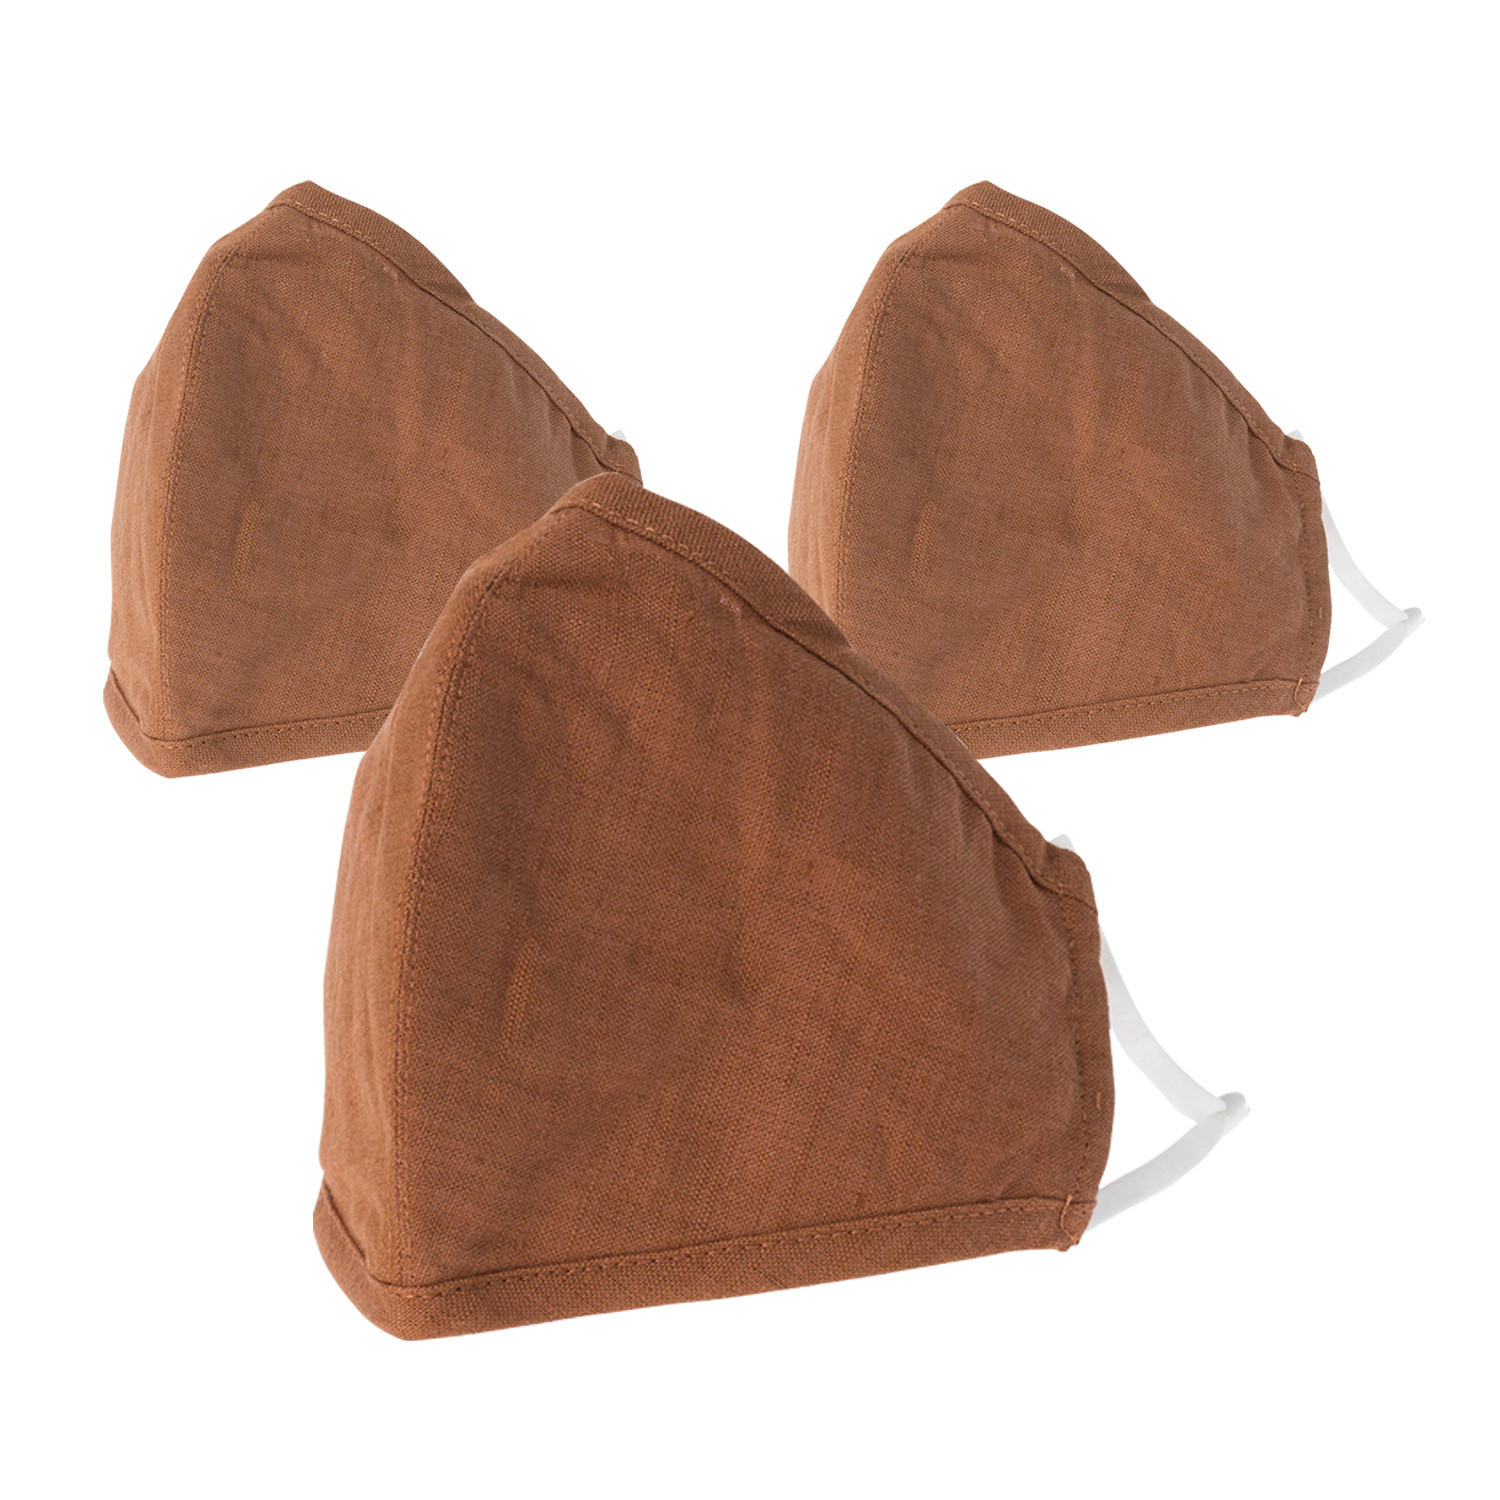 Reusable/Washable Light Brown Face Covering